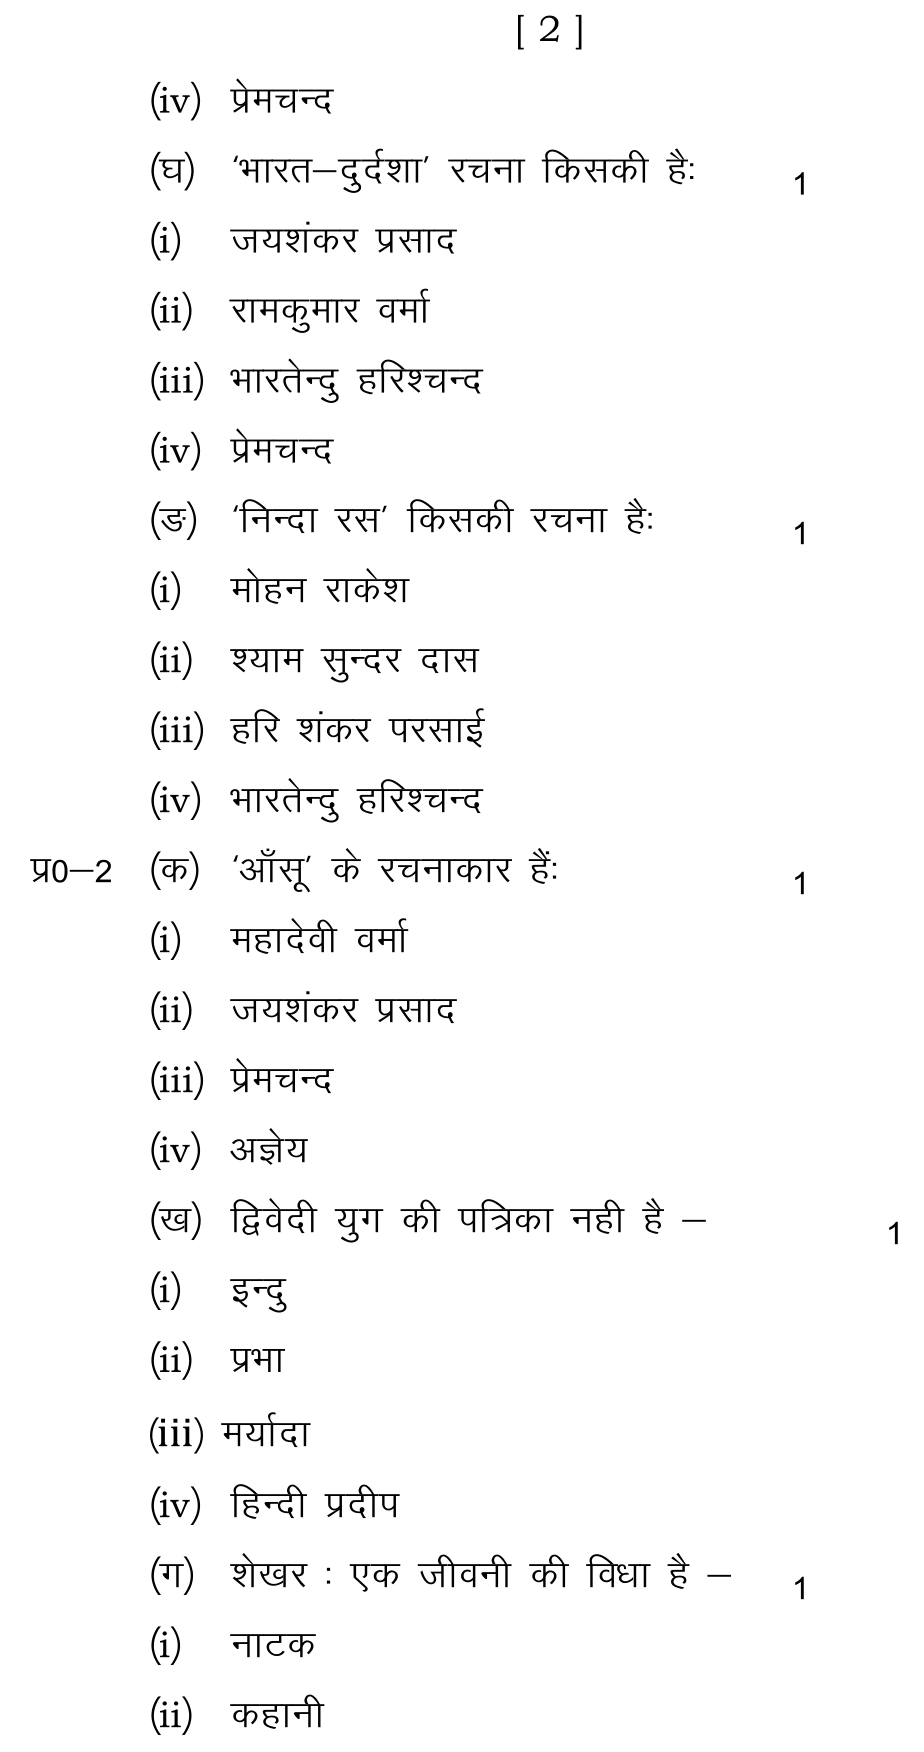 UP Board 12th Sample Paper 2019